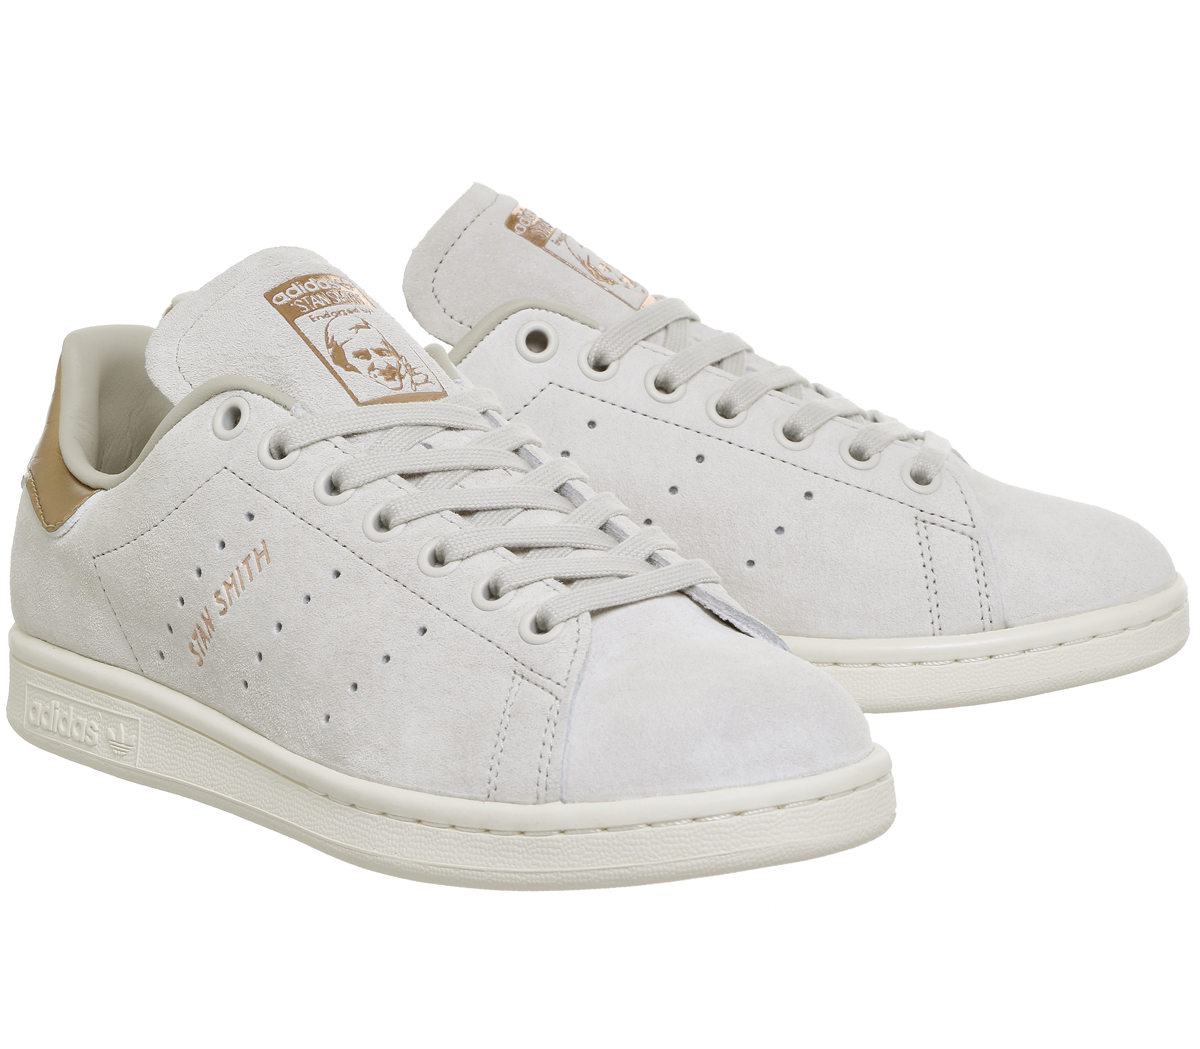 fa32edb0f431 Womens Adidas Stan Smith Trainers OFF WHITE COPPER Trainers Shoes